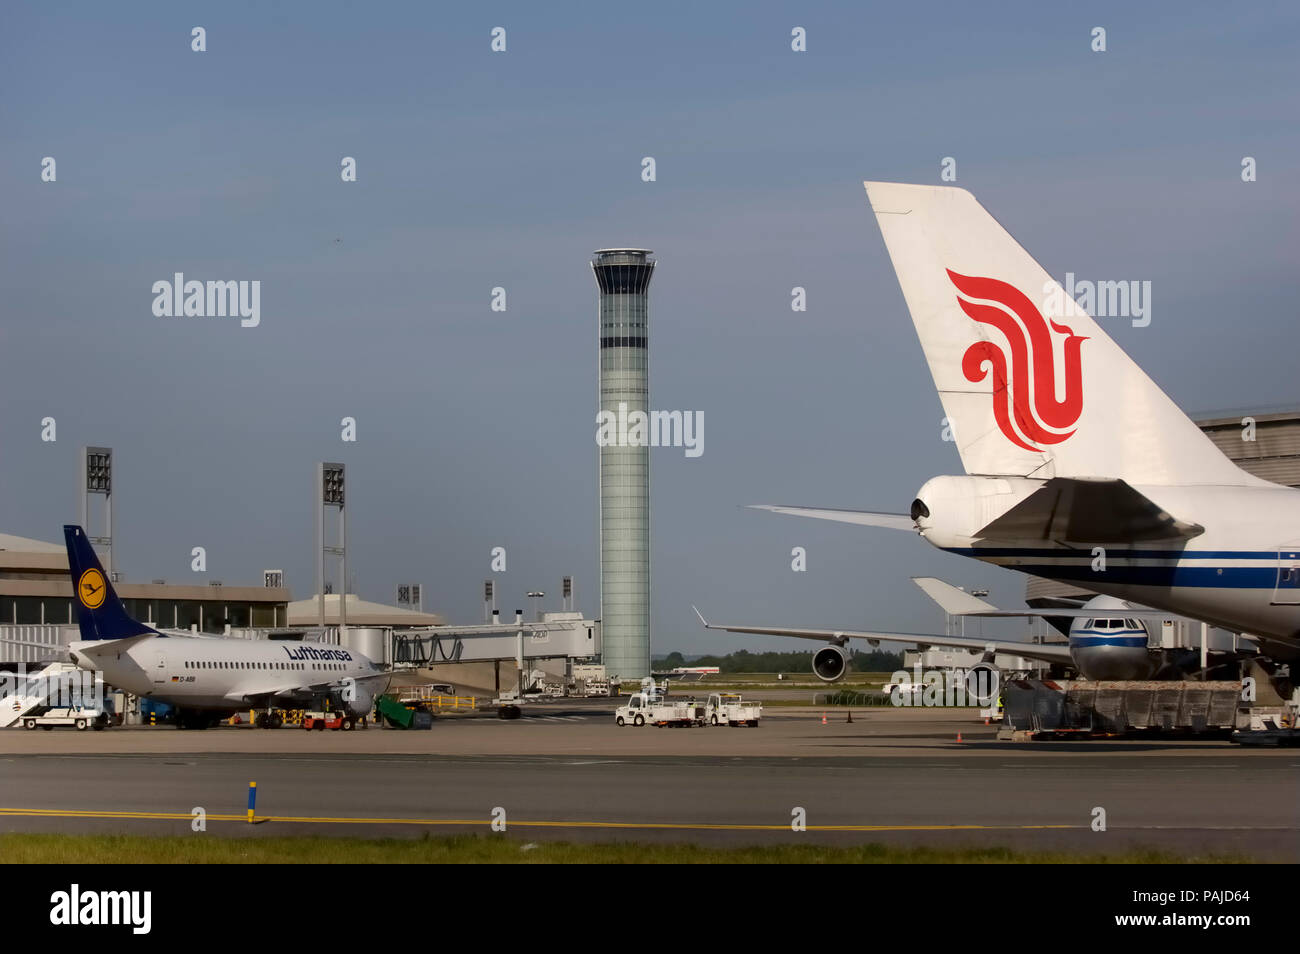 Air China tail with logo and B747-400 winglet with an A340 wing & engines, Lufthansa 737 parked and control-tower behind Stock Photo